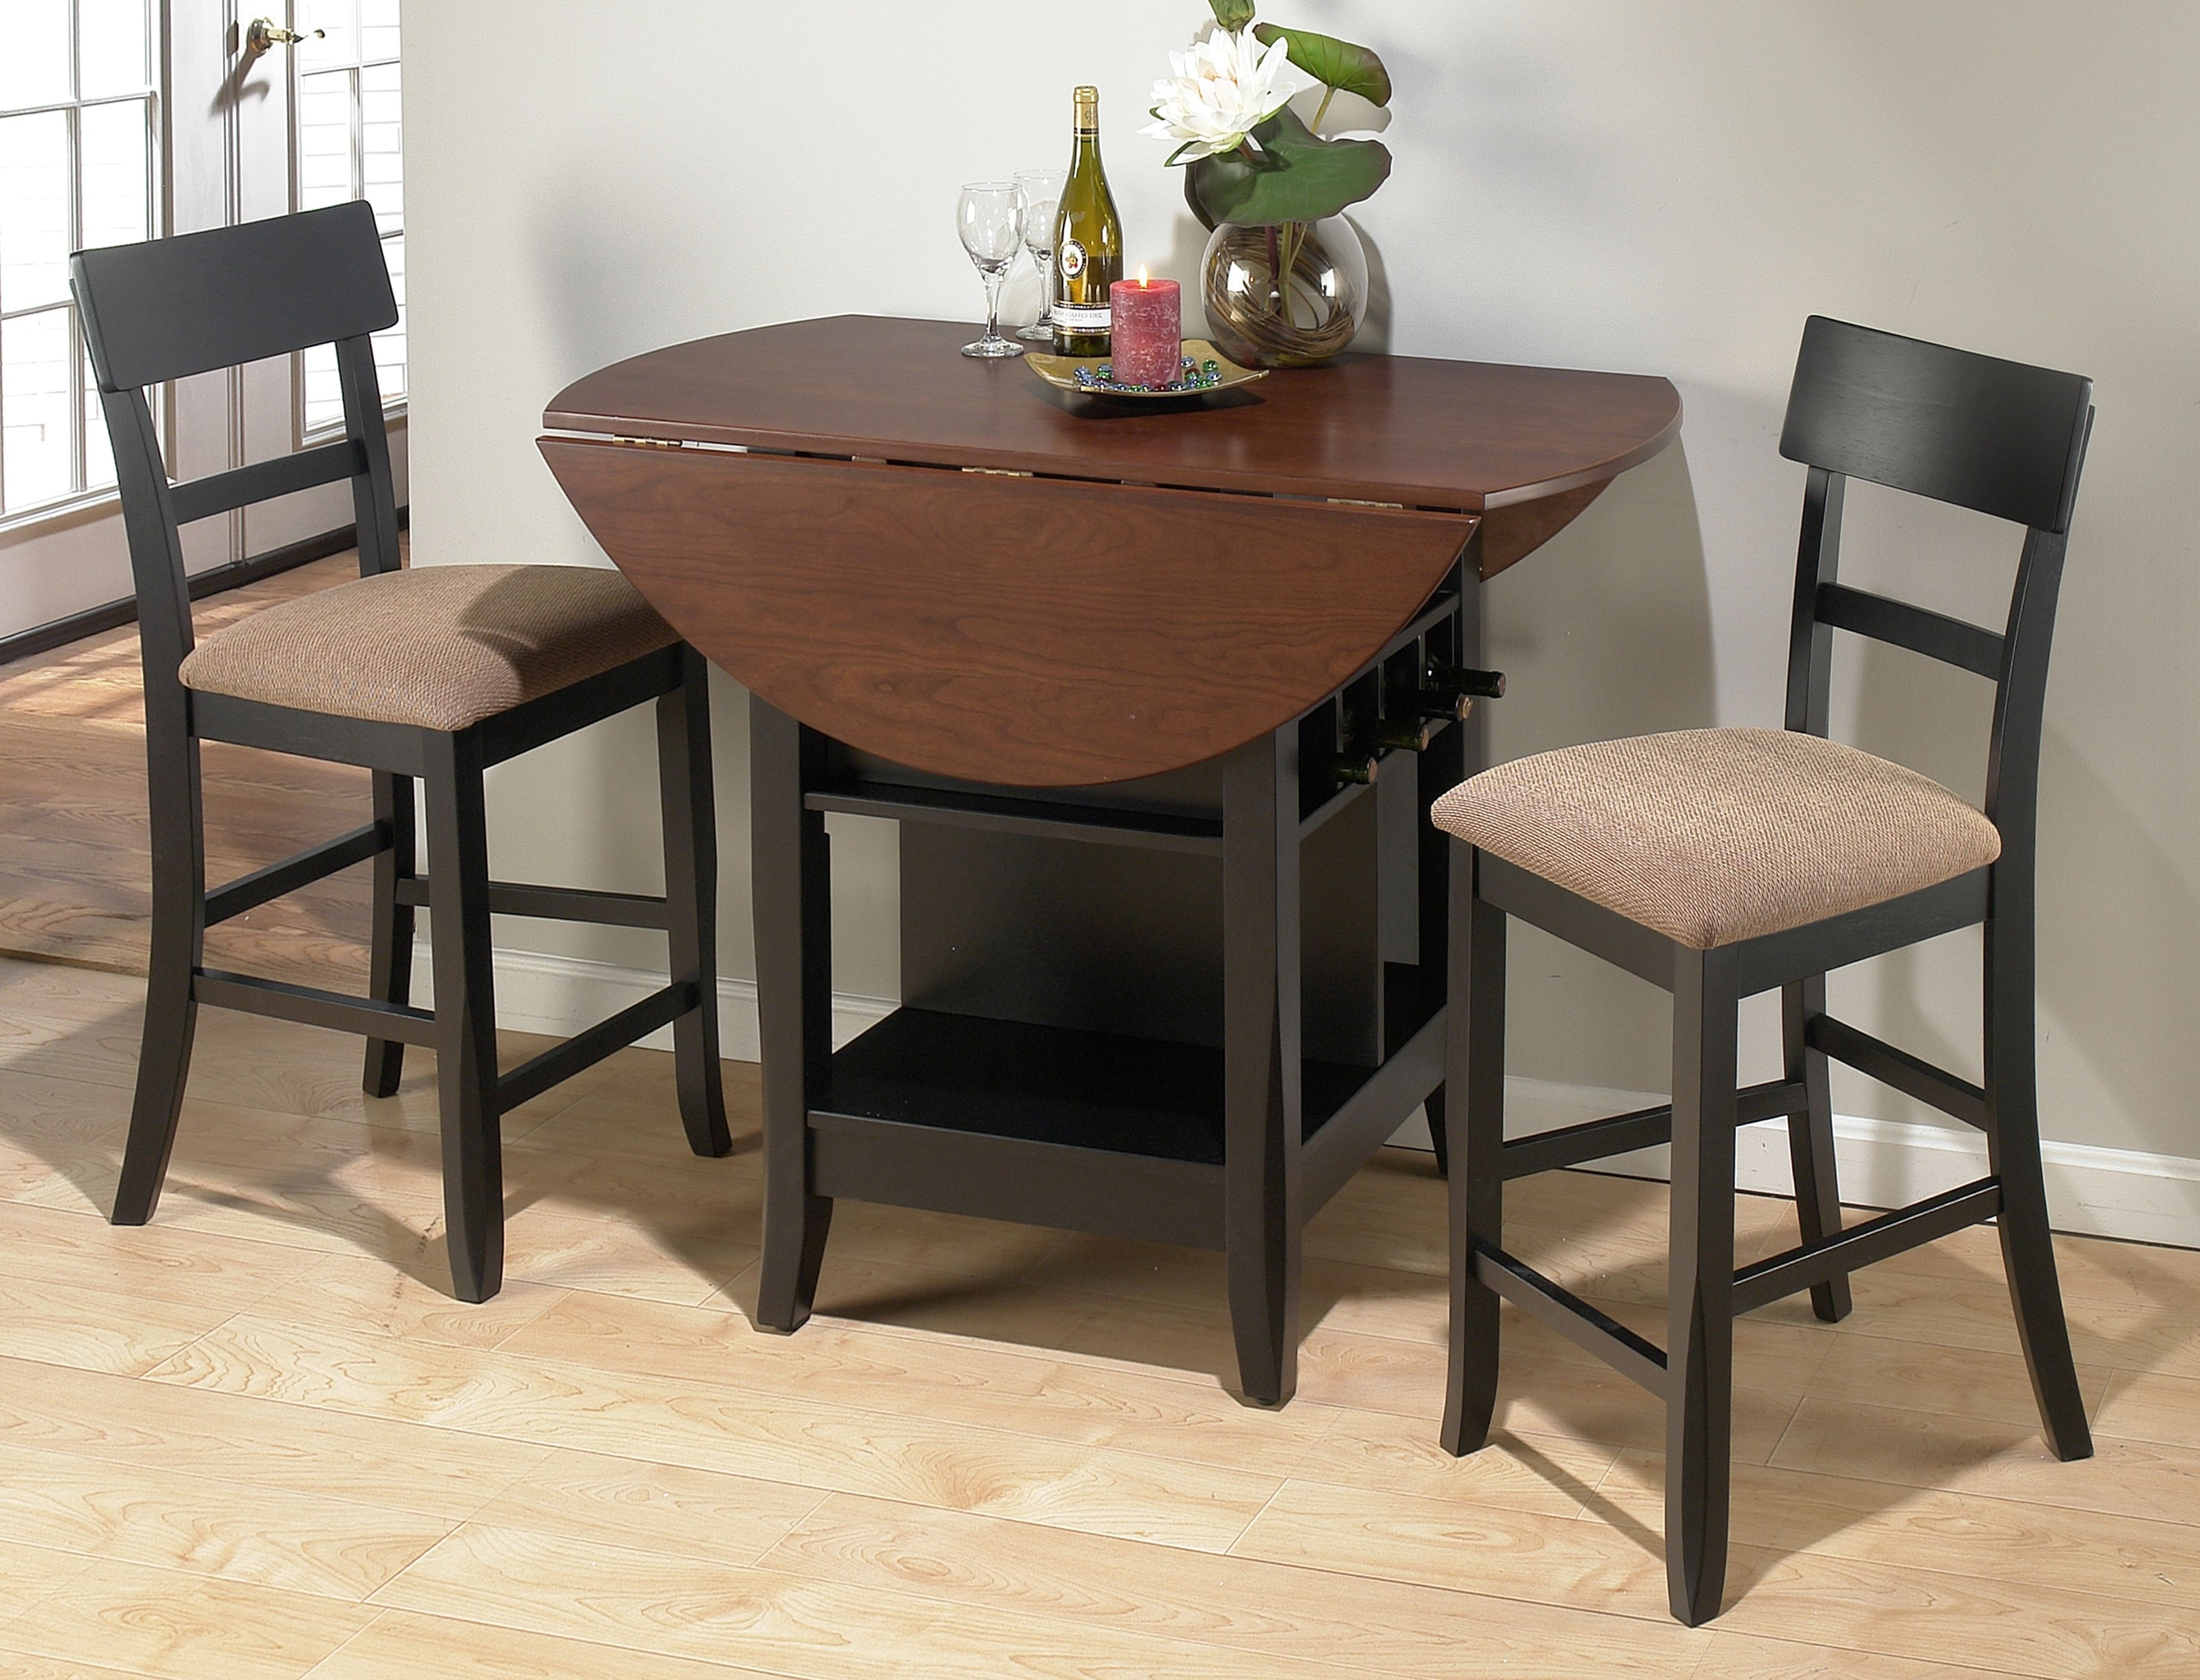 Most Recently Released Dining Tables For Two Within Dining Table Set For Two (View 13 of 25)